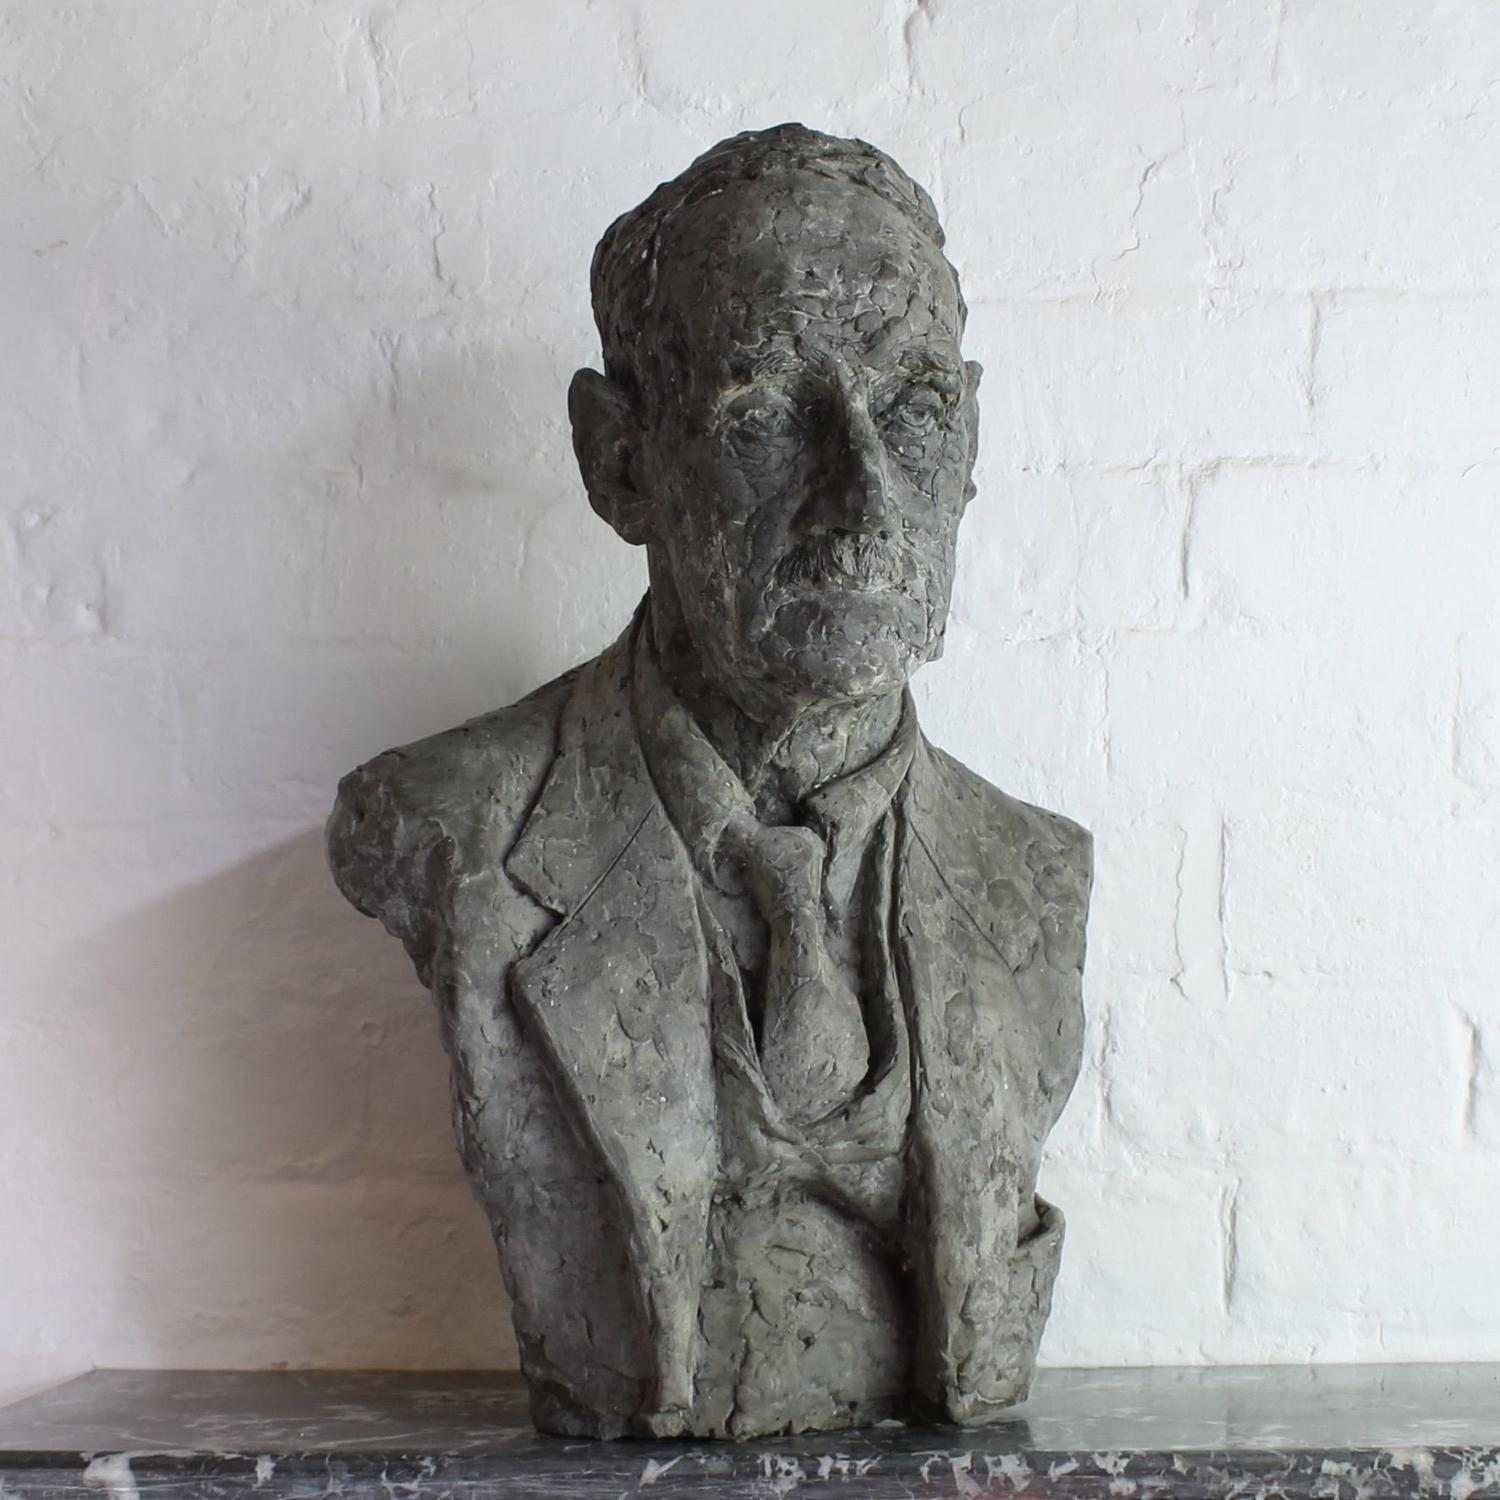 Sculpture Of An Elderly Gentleman